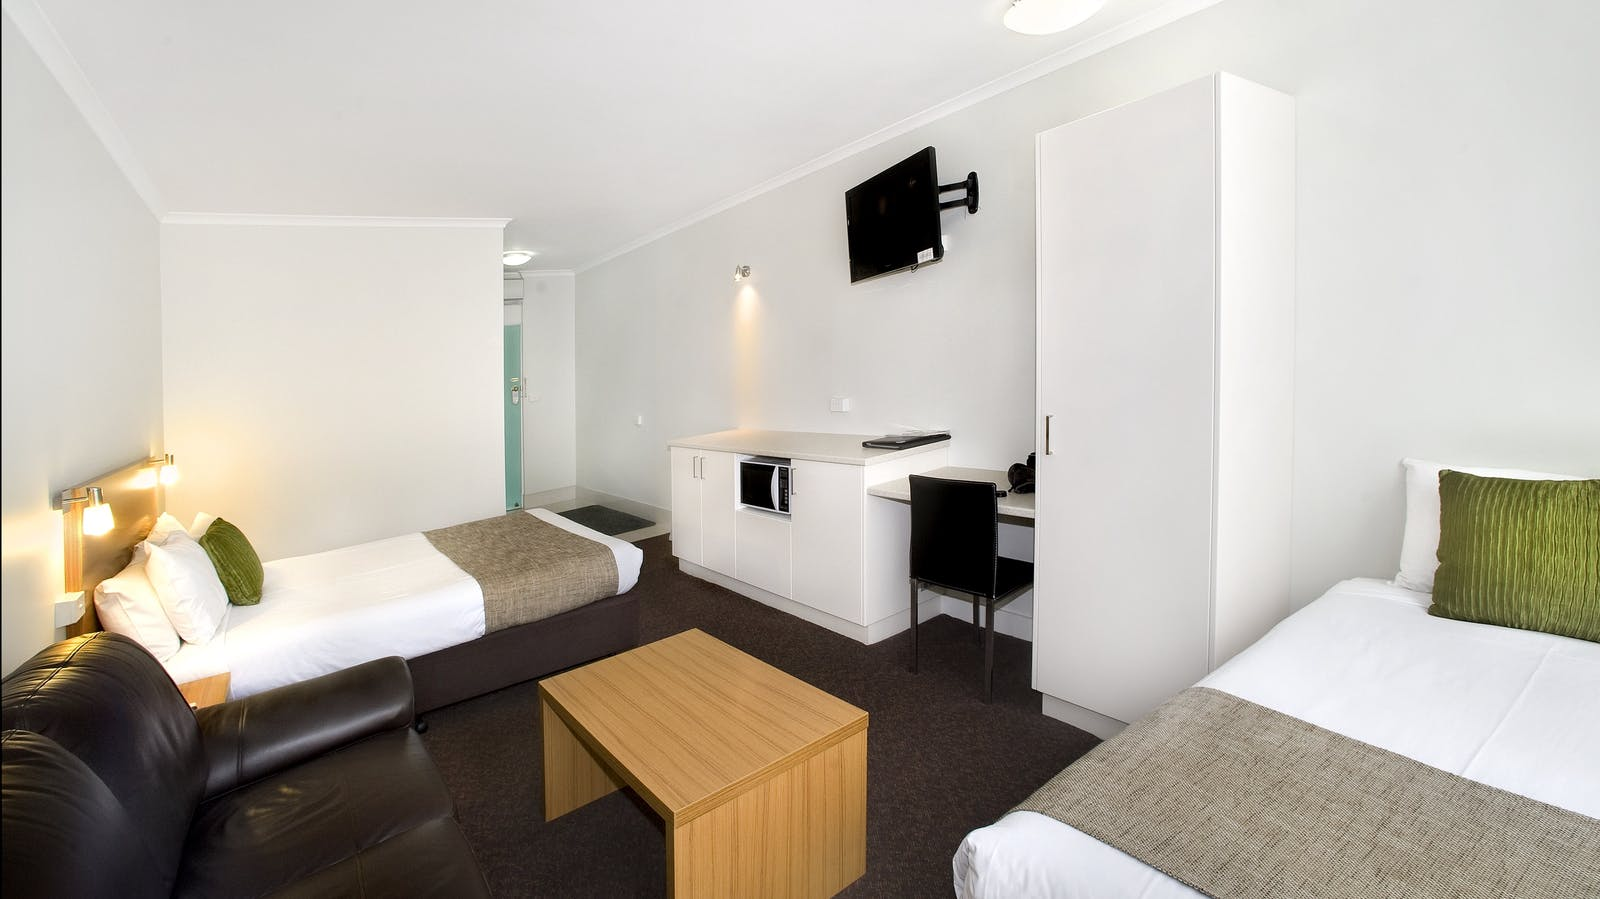 This room has a queen and single bed, sofa, microwave, toaster, tee & coffee making facilities, TV with free foxtel and private ensuite.